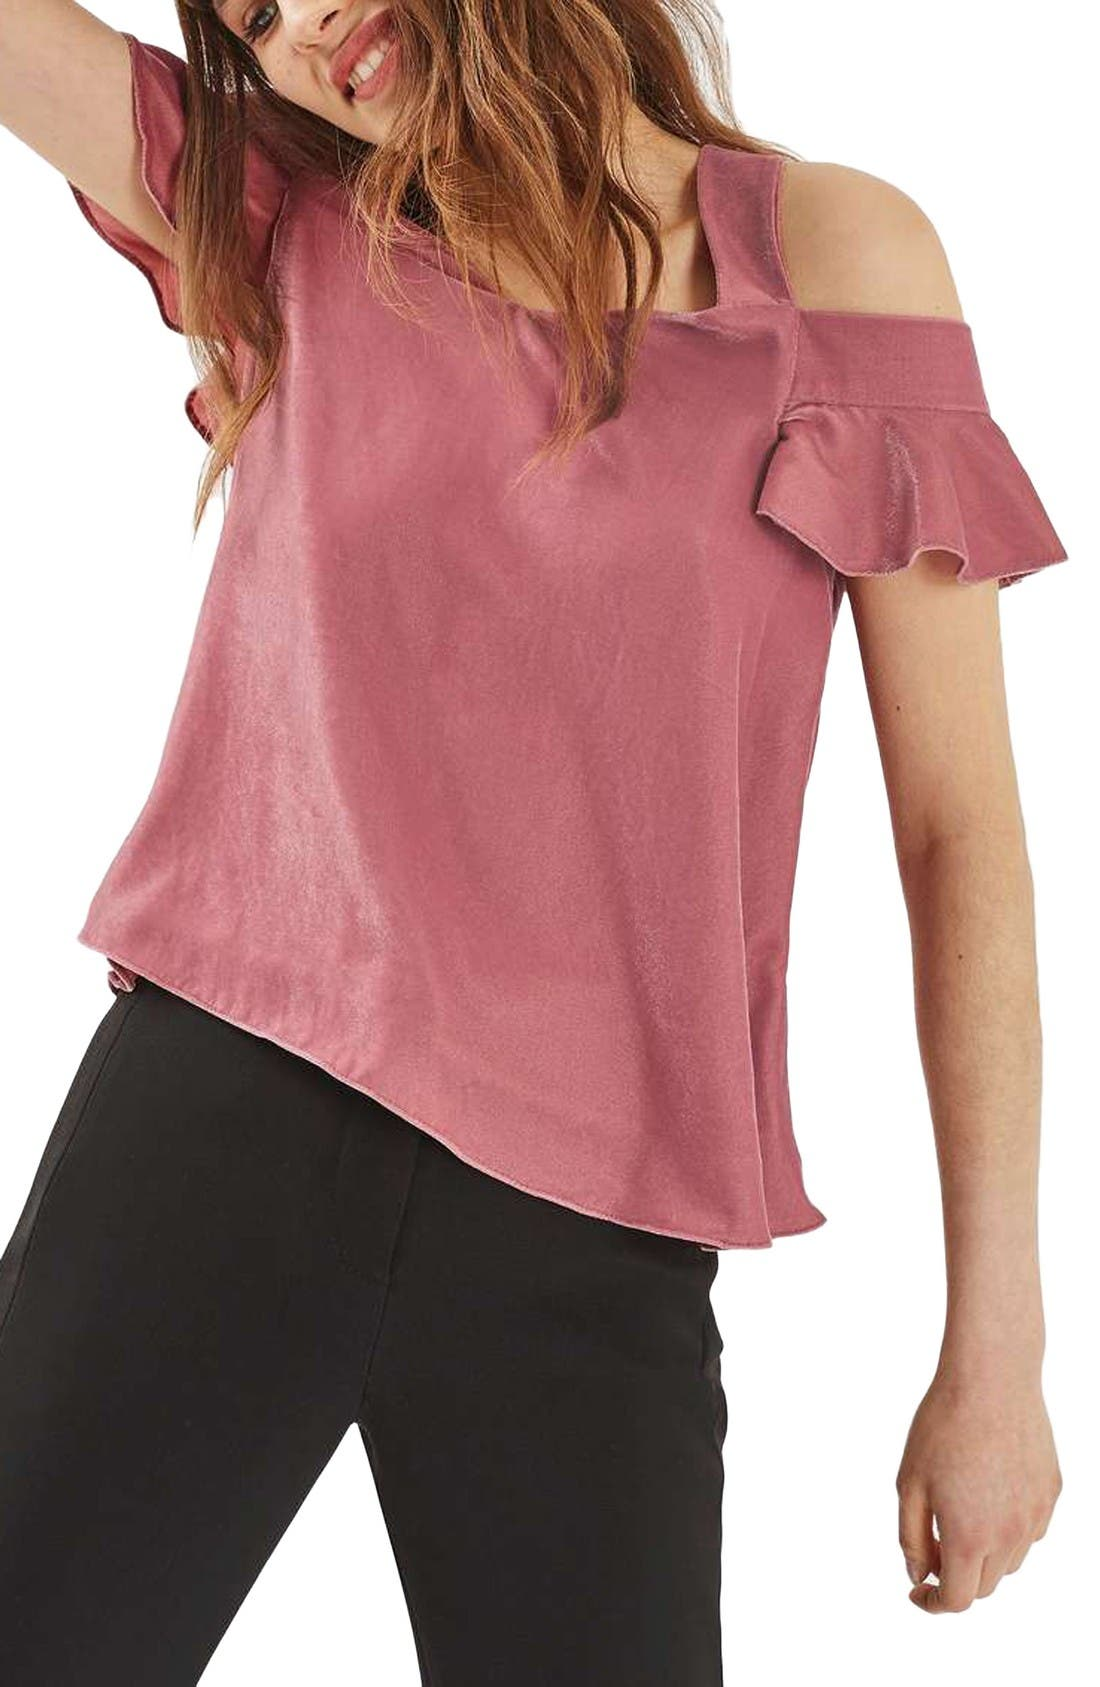 Alternate Image 1 Selected - Topshop Polly Bardot Velvet Top (Regular & Petite)